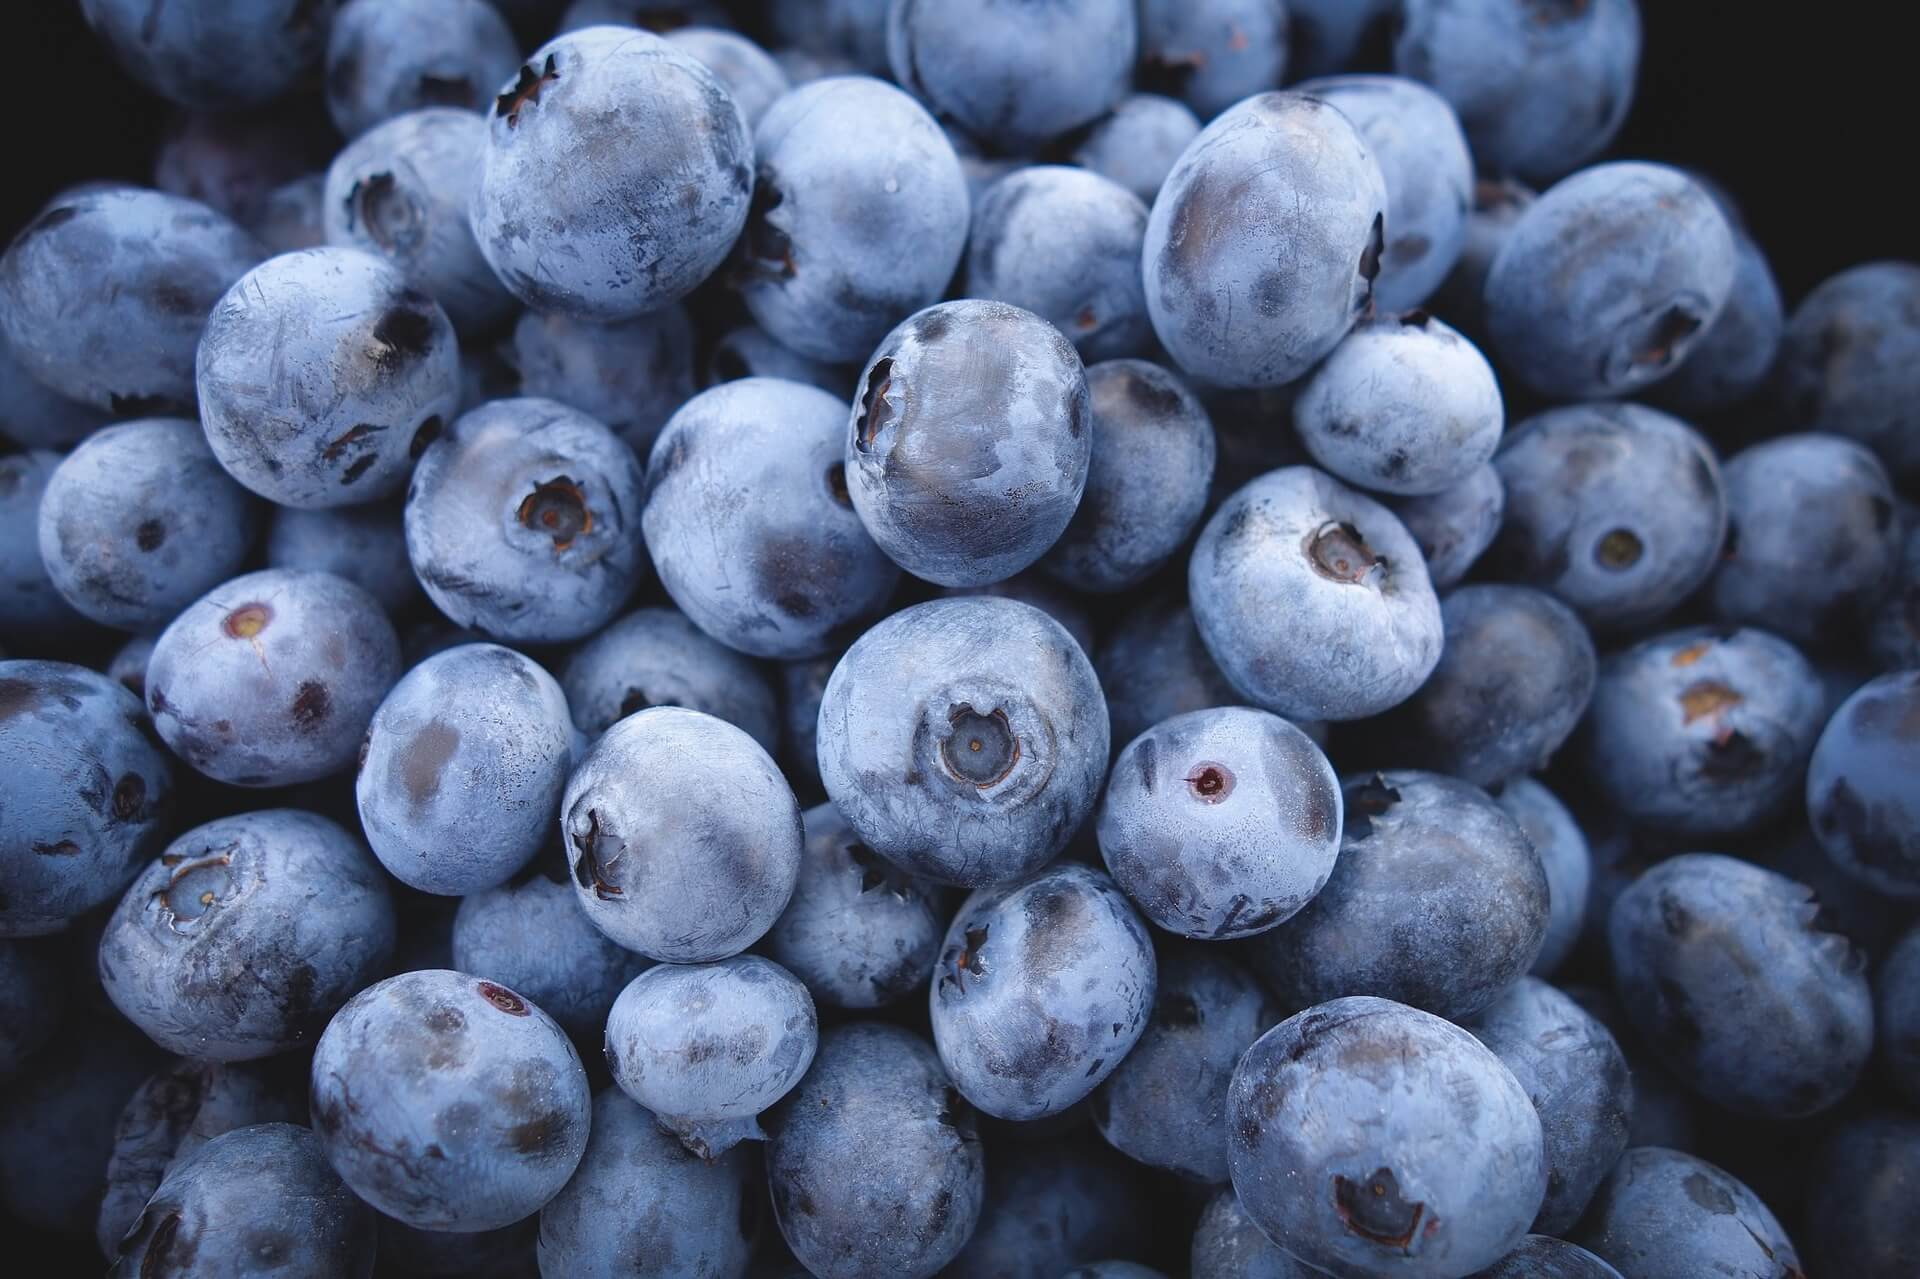 e-archiving blueberries